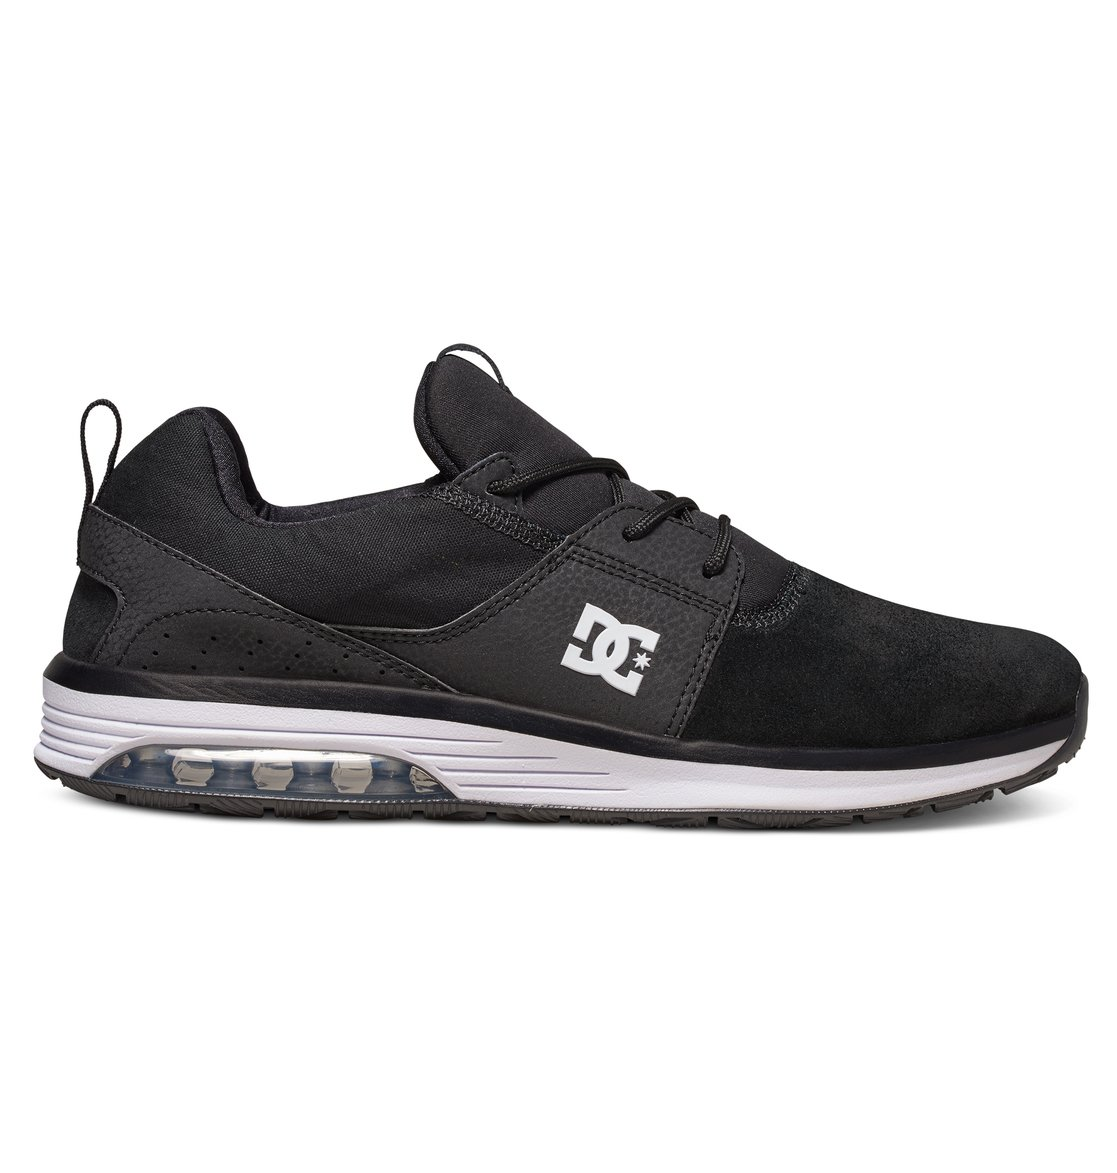 Baskets Pour Homme Ia Heathrow Adys200035Dc Shoes kiwPZuTOX